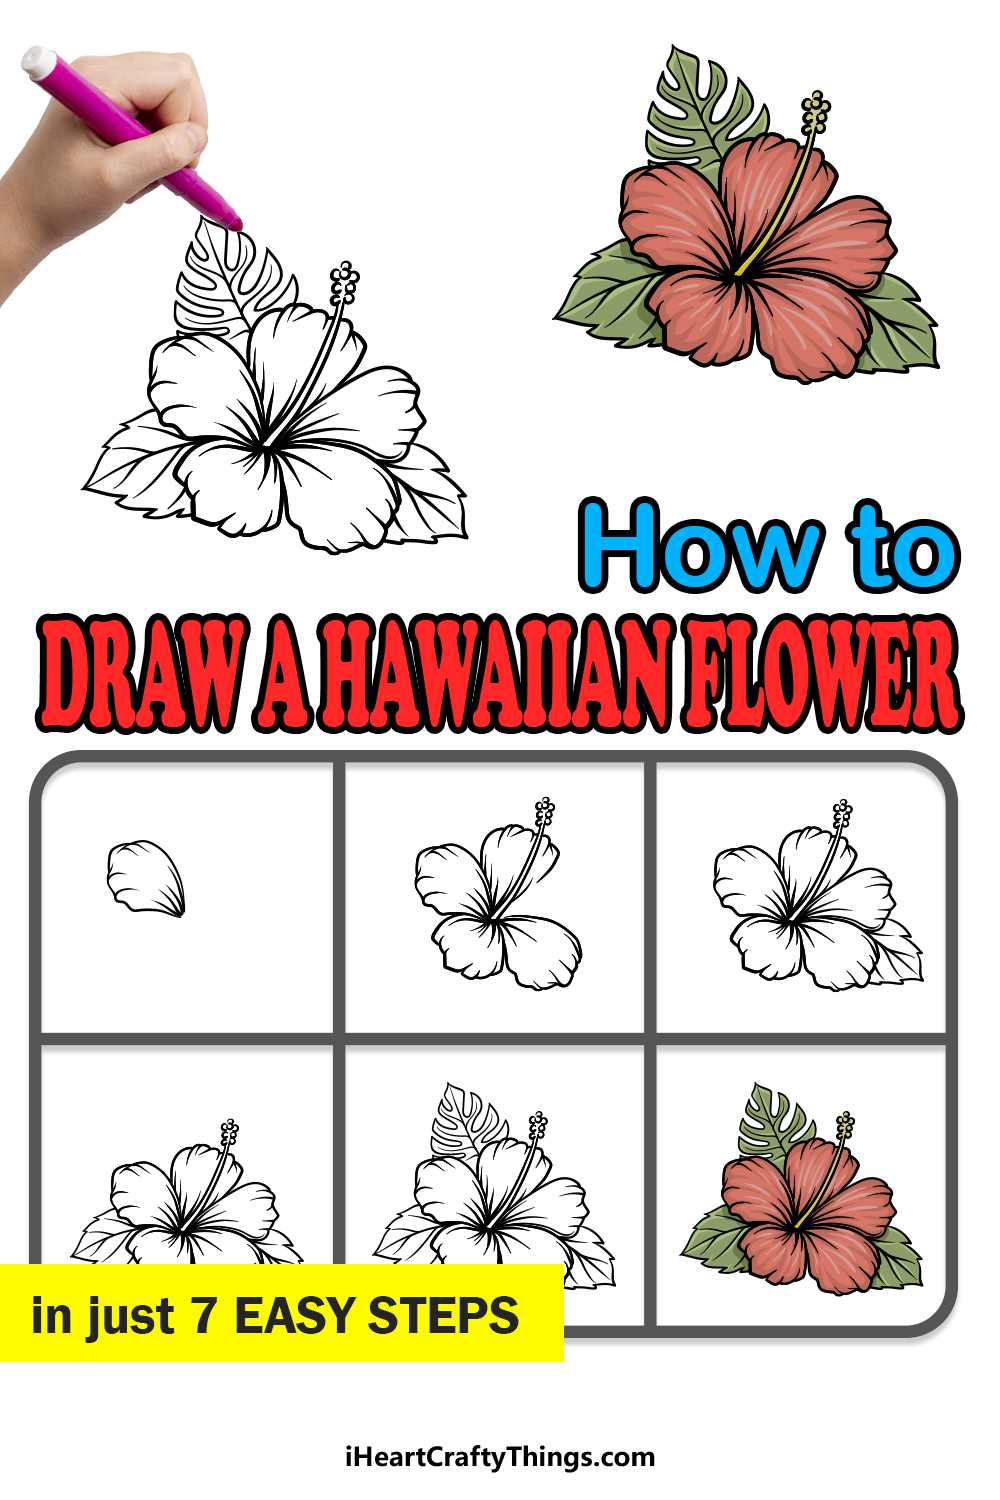 how to draw Hawaiian Flower in 7 easy steps